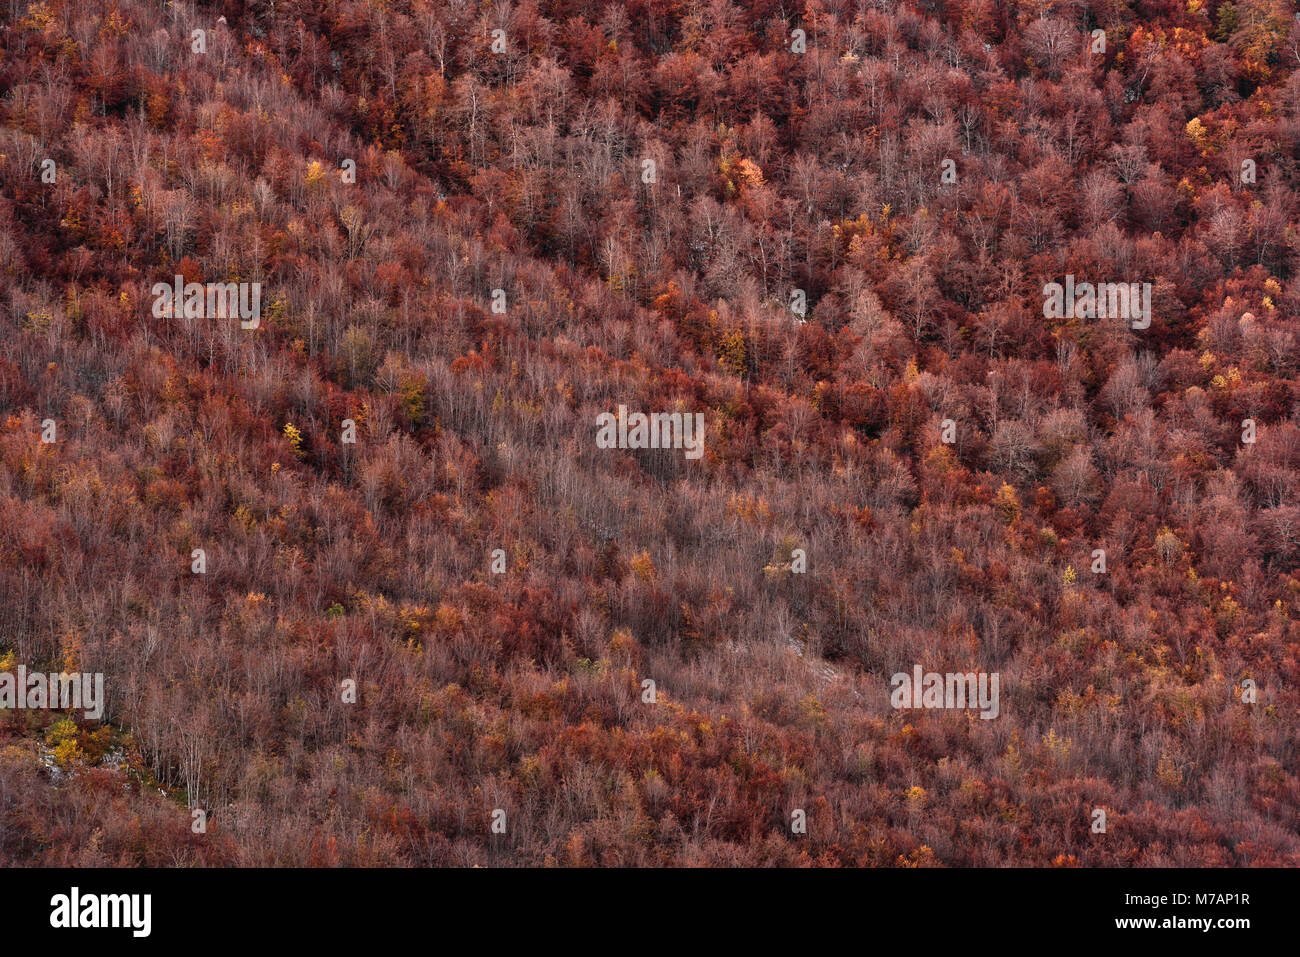 Detail of autumn forest in the Picos de Europa, Cantabria, Spain - Stock Image